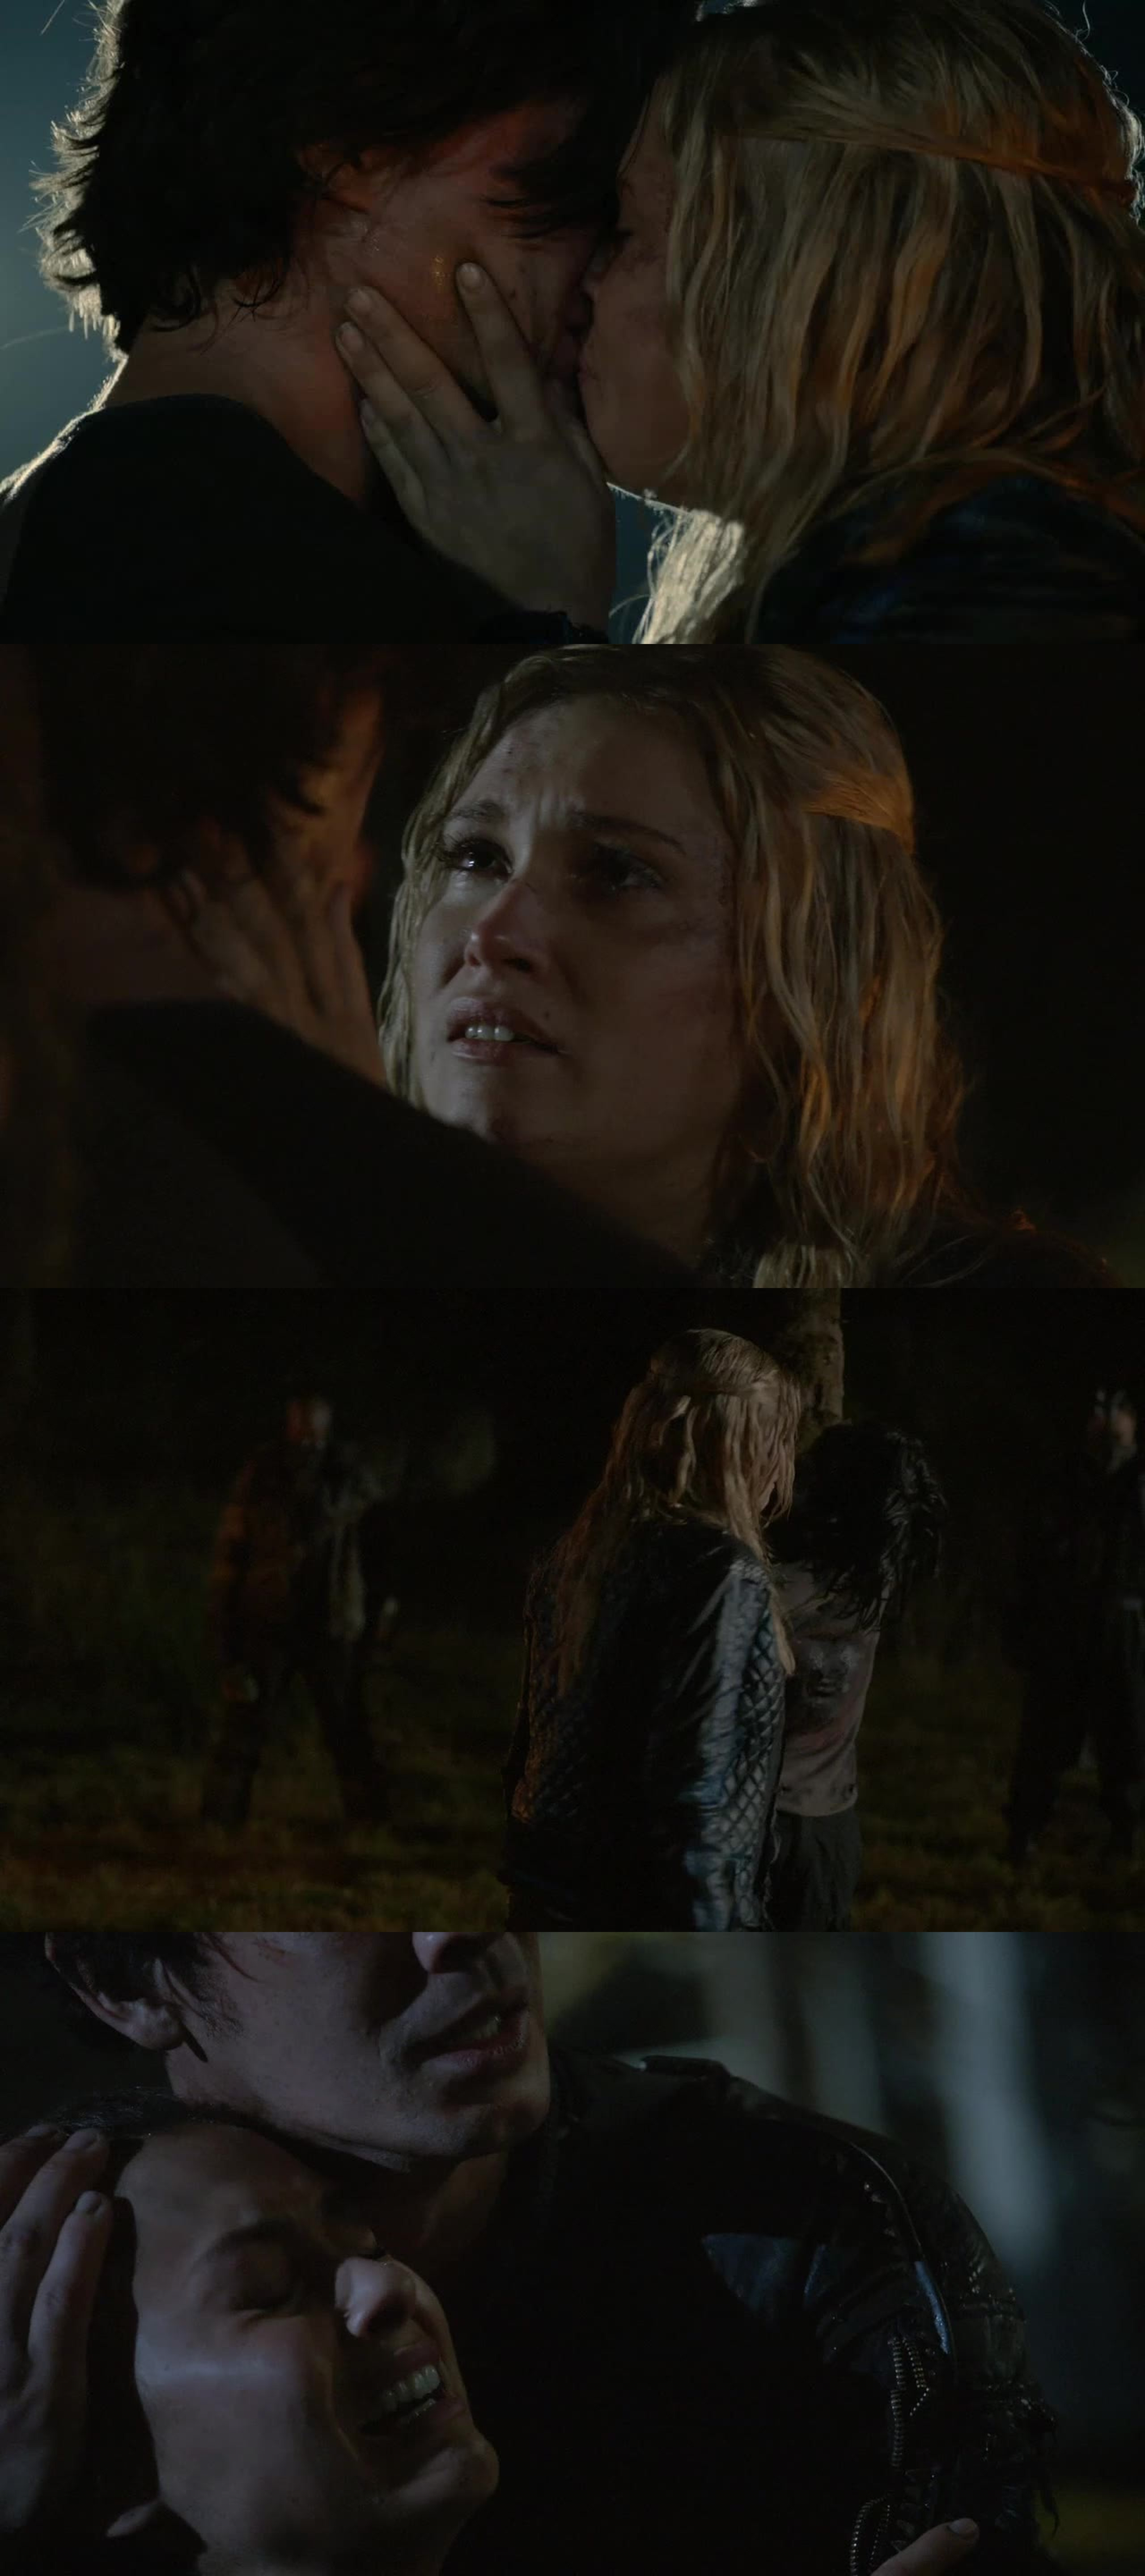 I kinda hated Finn because he was useless and annoyng  but I felt really bad when he died, I mean...Clarke, the kiss, the fact he was just 18, Raven! It has been heartbreaking but he had to die. Blood for blood and long may bellarke lives